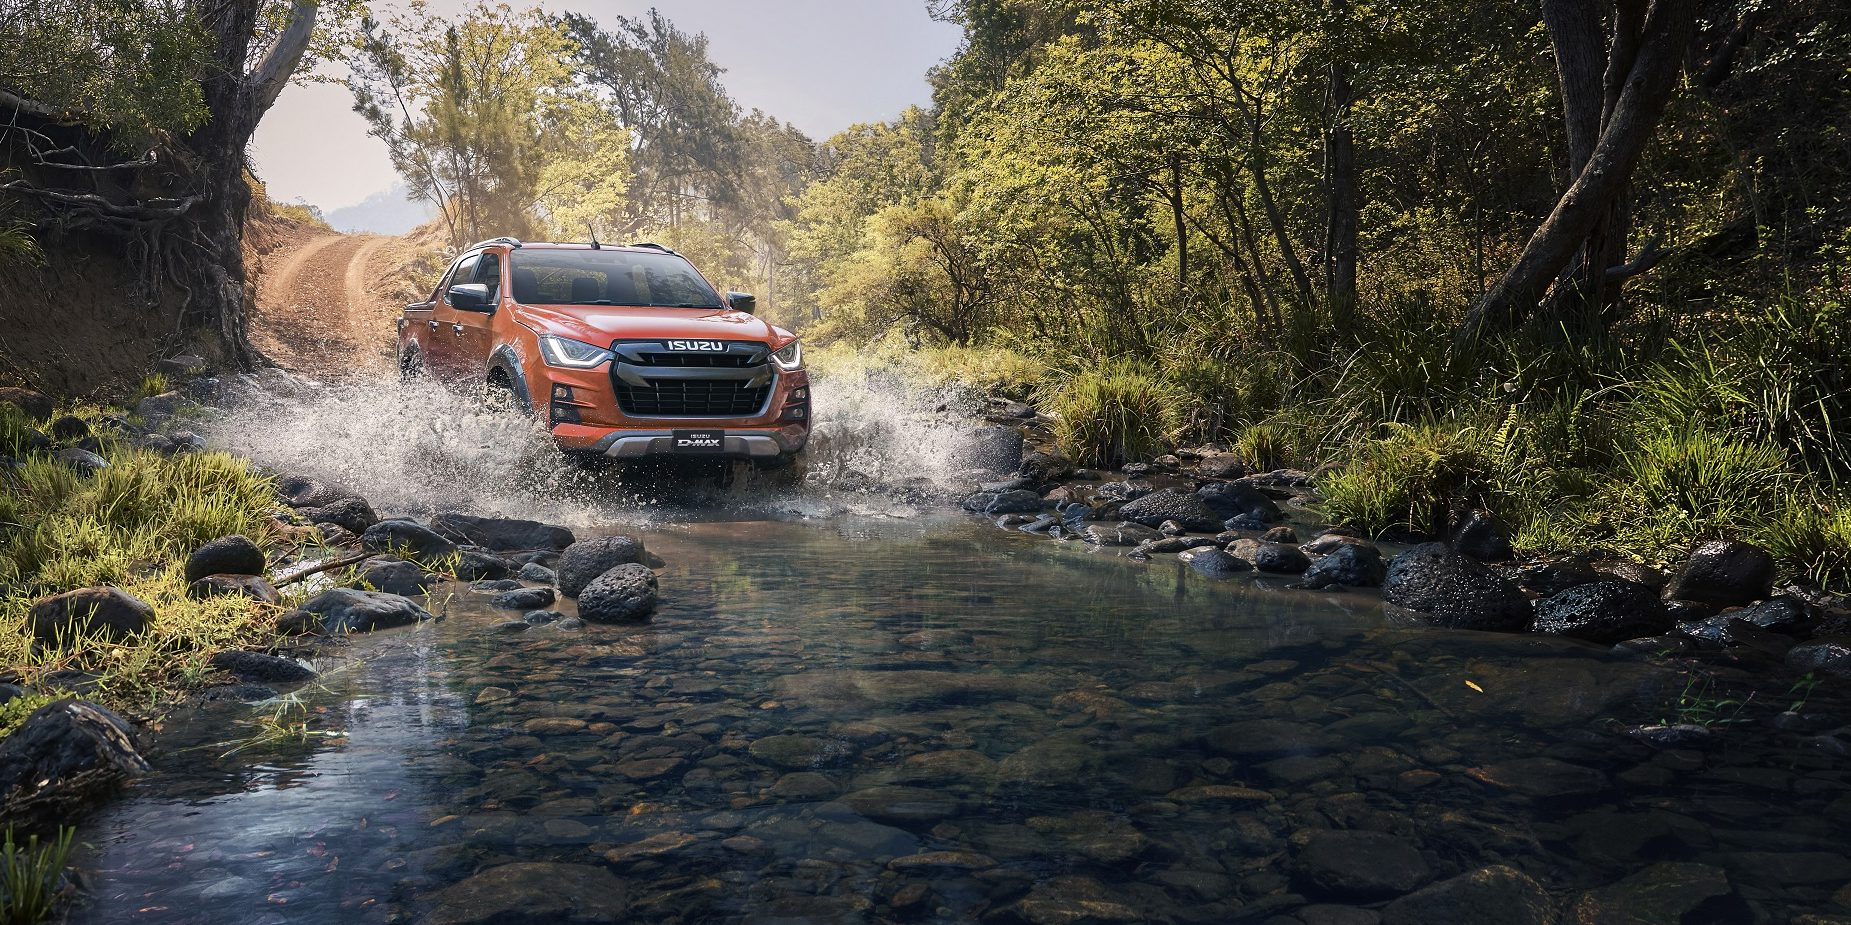 All-New 2021 Isuzu D-MAX – Full details and pricing